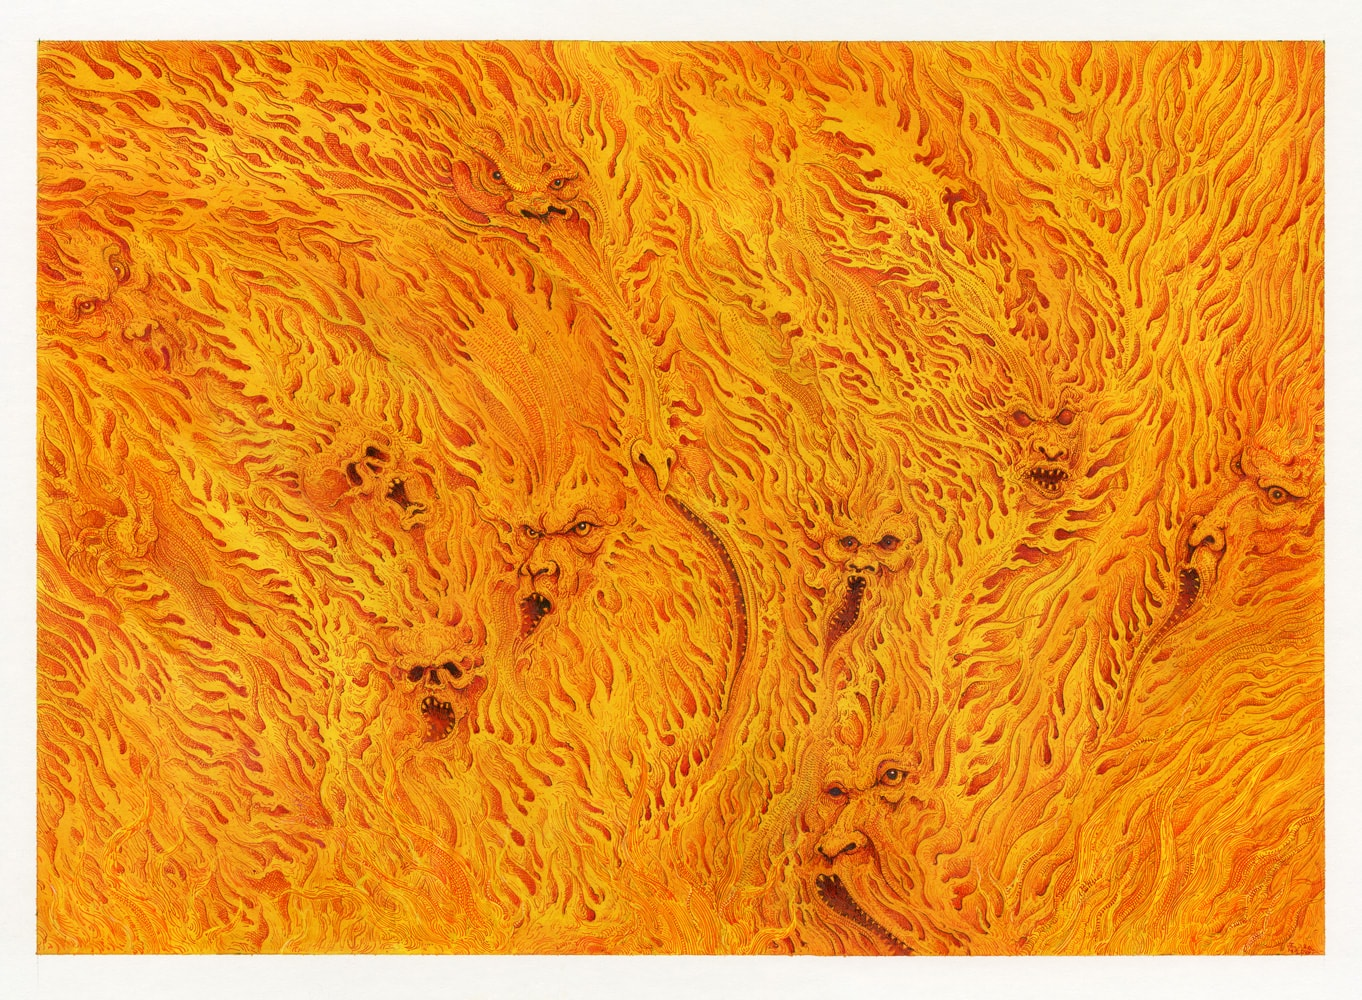 Wall Of Fire Pen and ink on illustration board 29.8cm x 42cm (2020) £750.00